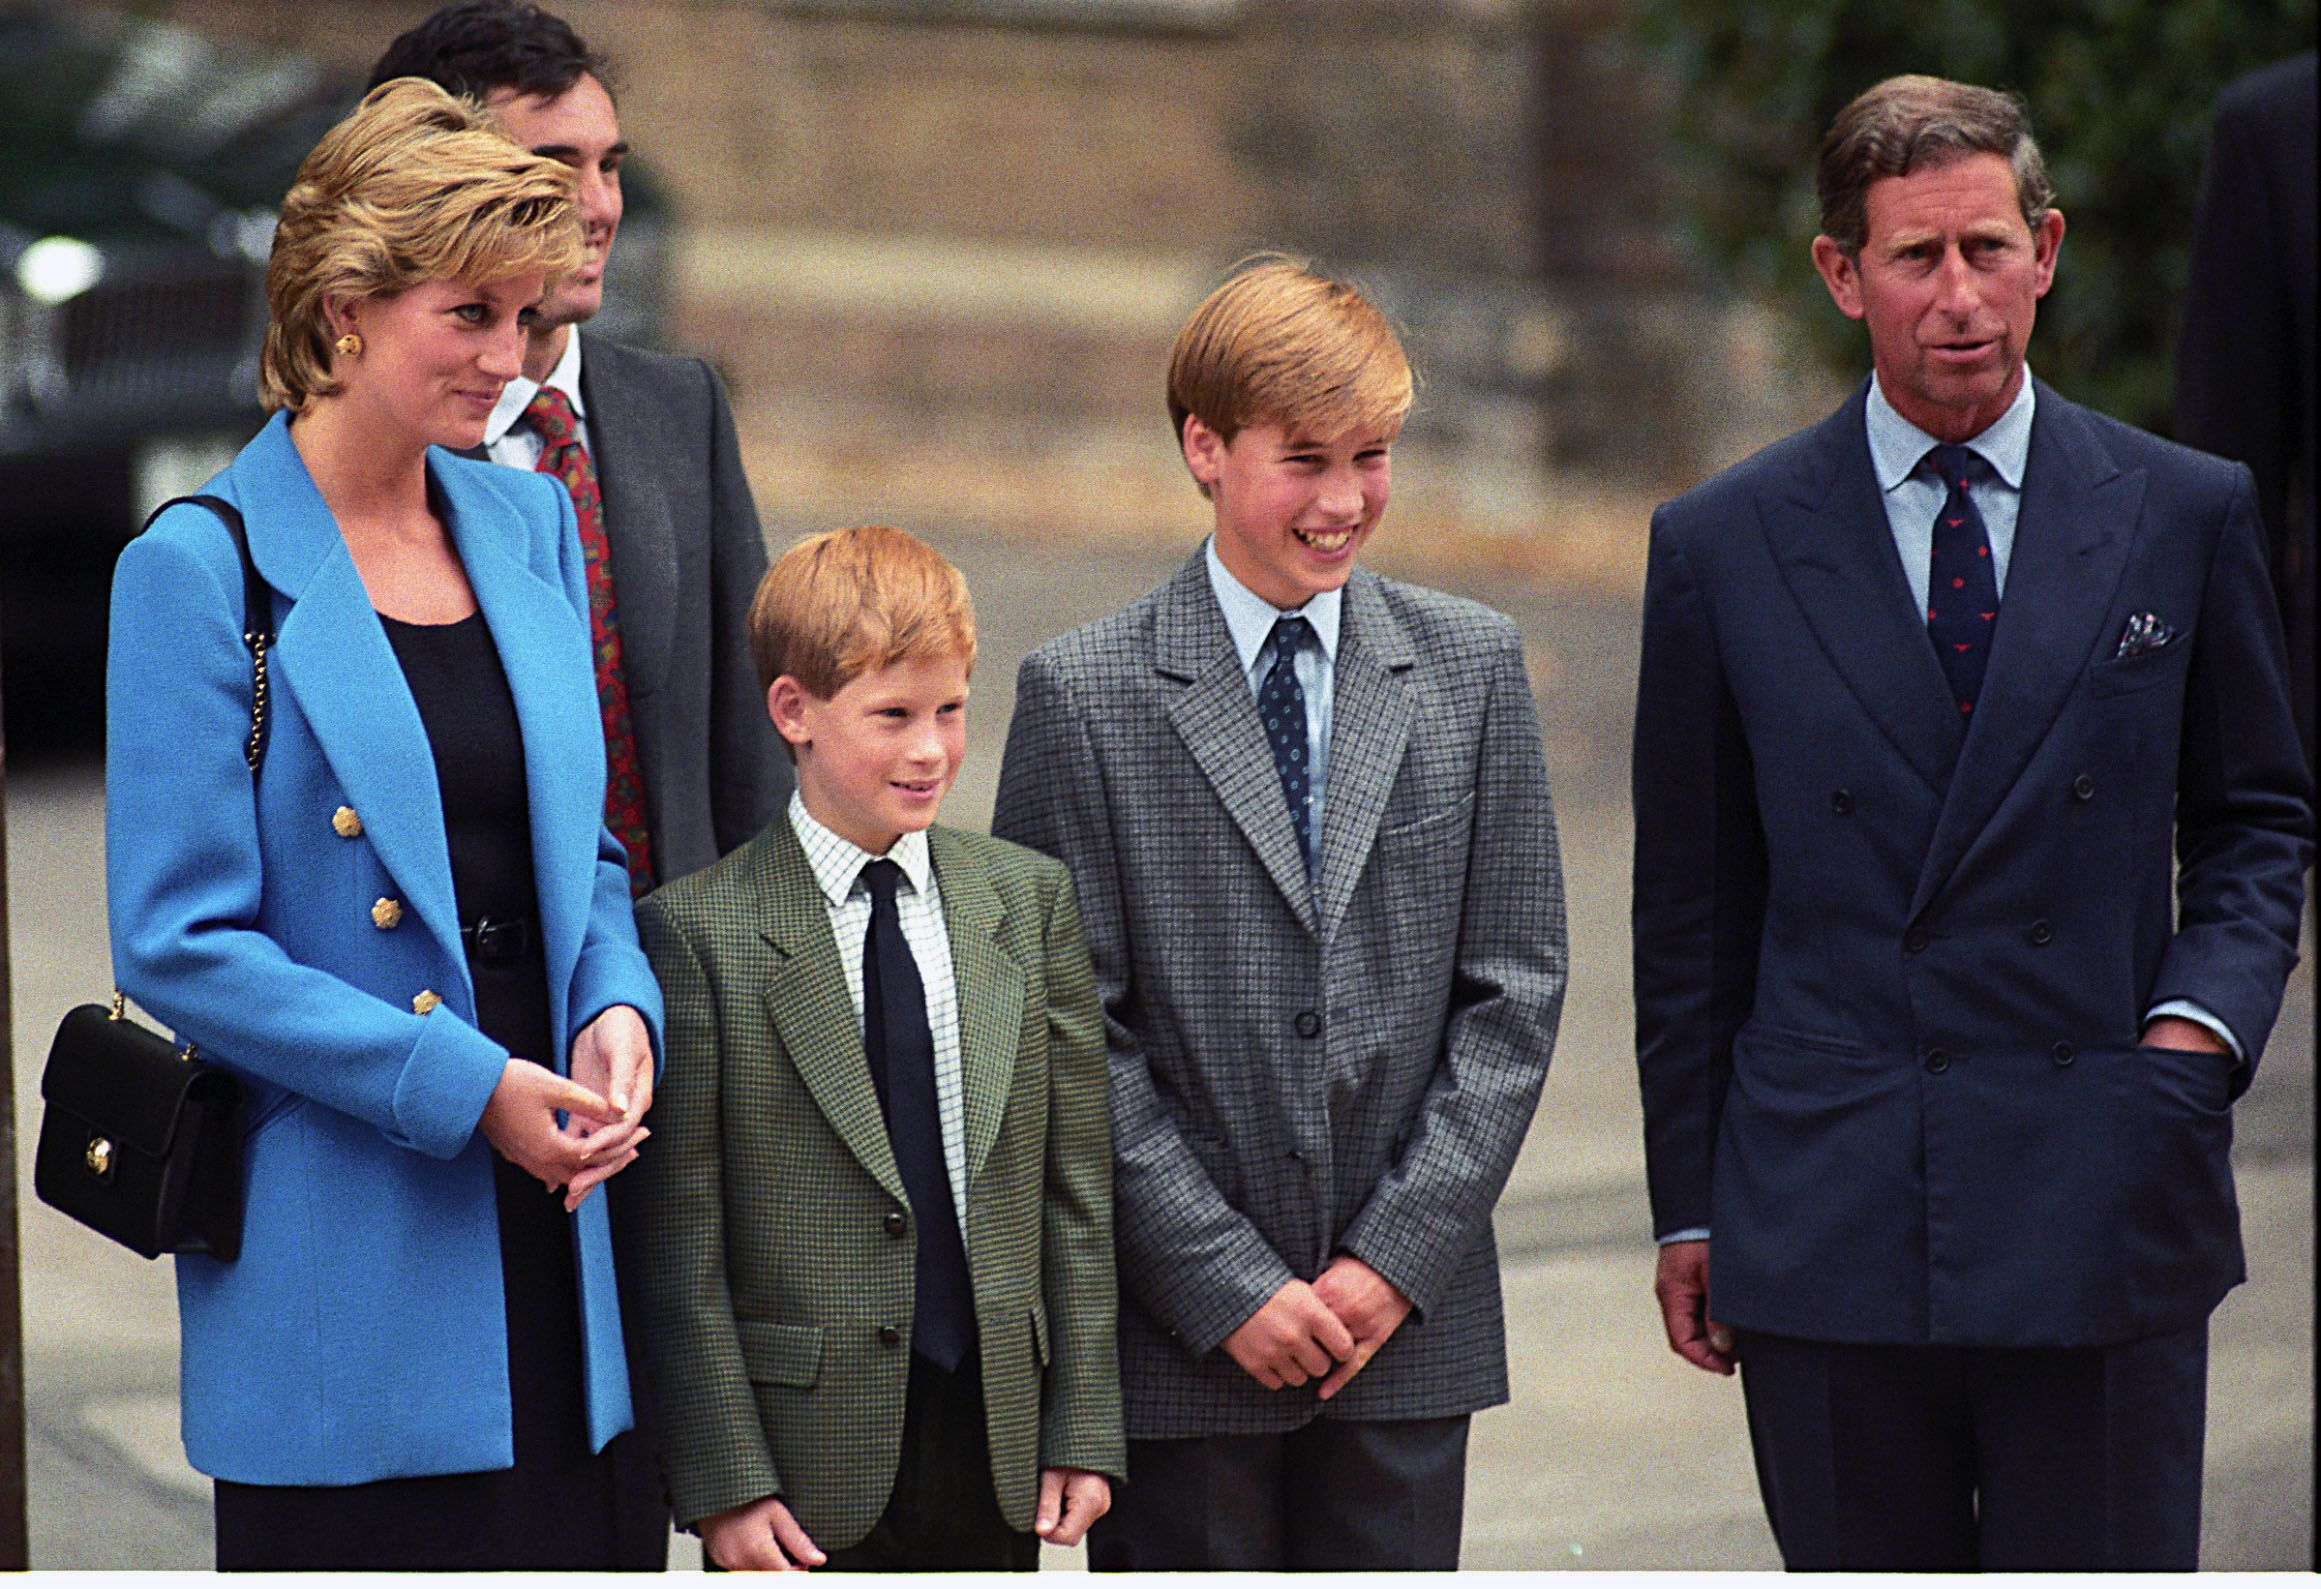 Prince Harry Needs to Act More Like Prince William and Princess Diana, According to a Royal Expert